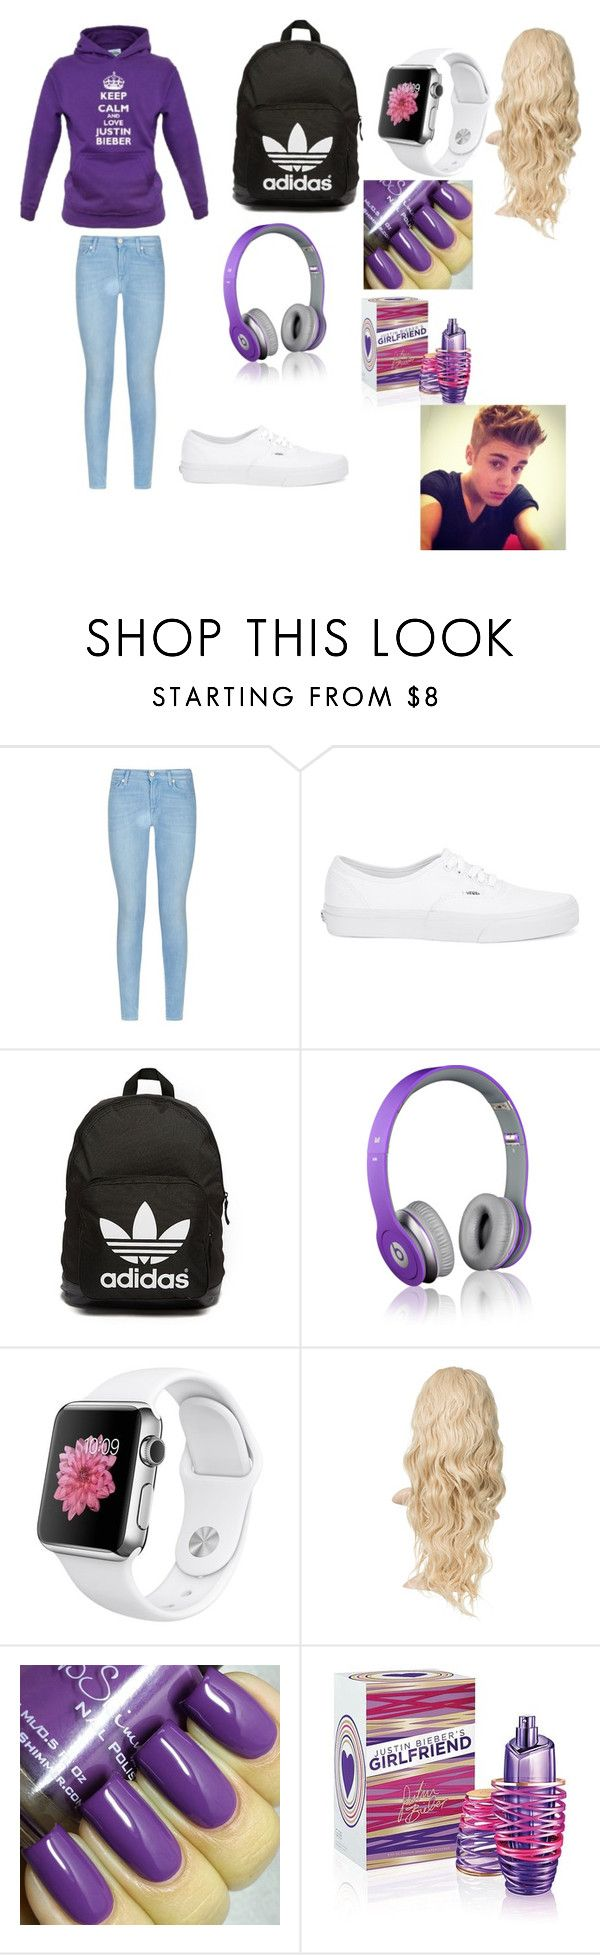 """""""justin bieber concert outfit"""" by meriahc ❤ liked on Polyvore featuring Justin Bieber, 7 For All Mankind, Vans, adidas Originals, Beats by Dr. Dre, women's clothing, women's fashion, women, female and woman"""